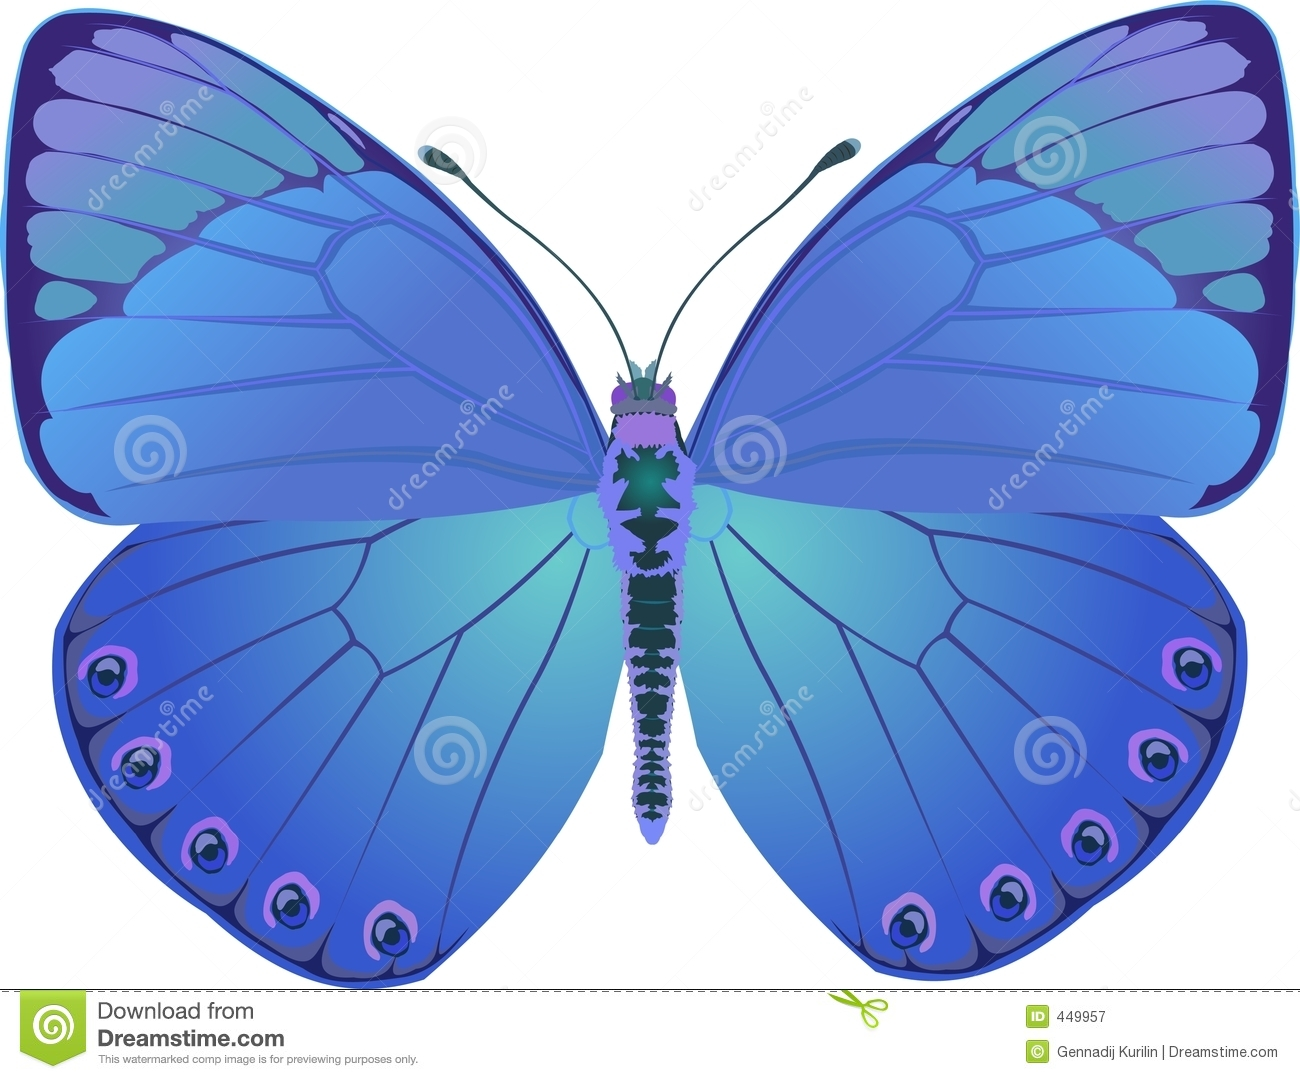 blue objects clipart - photo #11